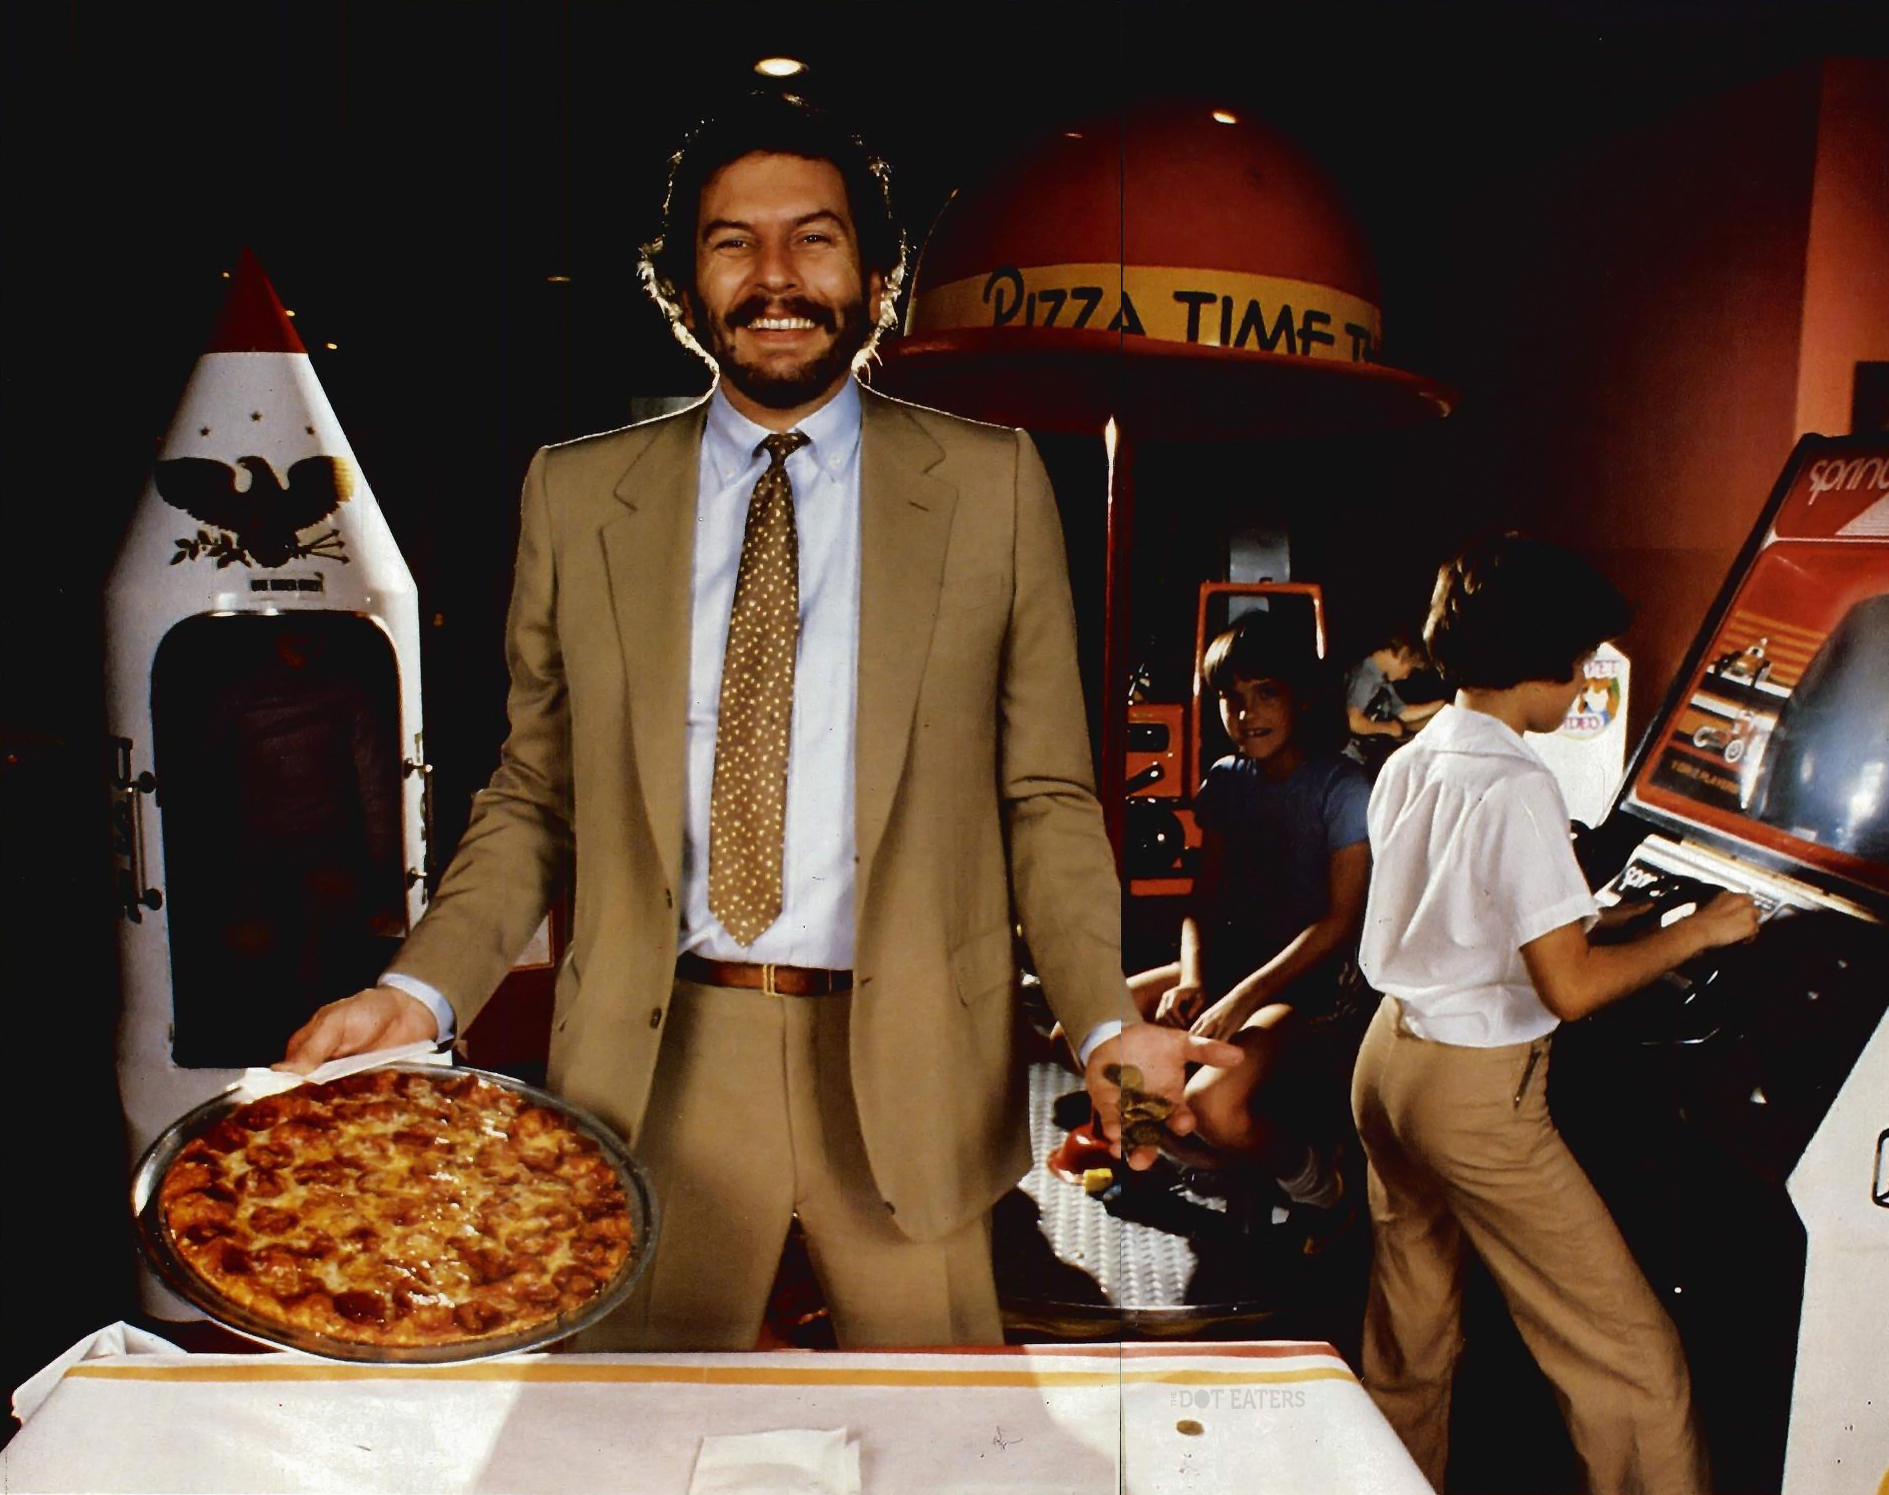 1984 image of Nolan Bushnell, founder of Atari and Chuck E. Cheese